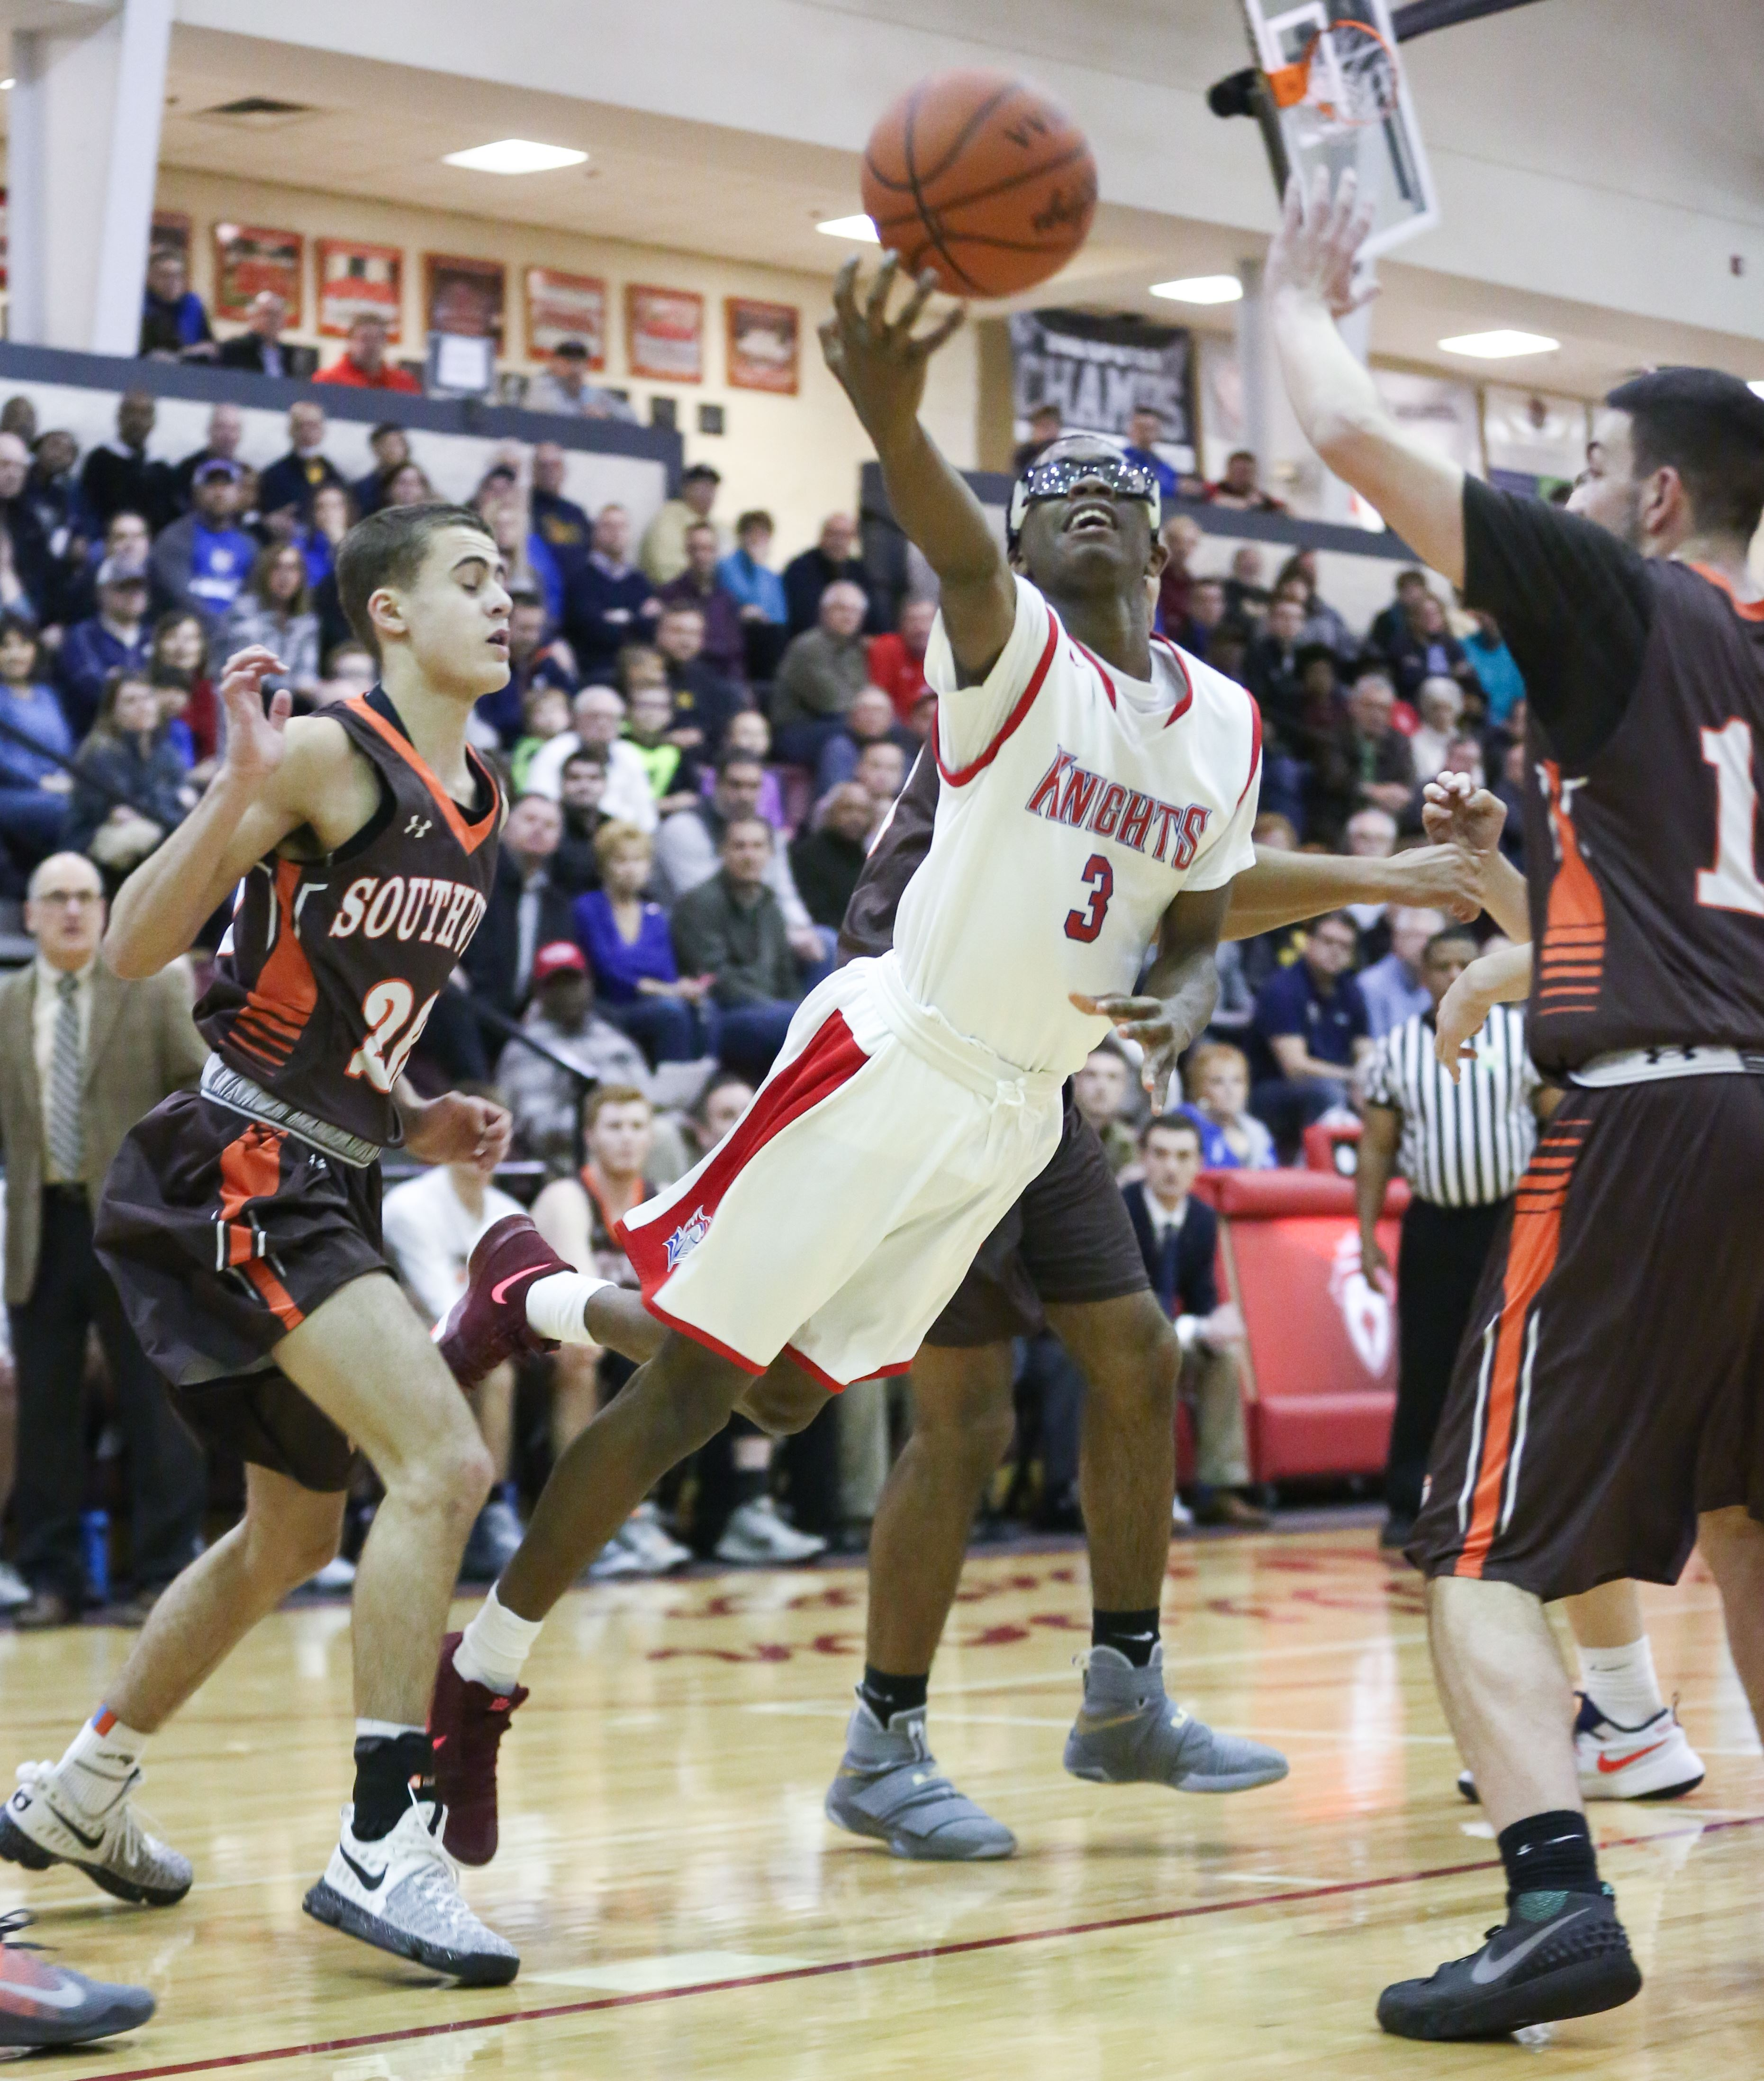 in pictures st francis 70 southview 67 st francis player jakiel wells shoots against southview s tyson king left and will wooddall the blade jeremy wadsworth